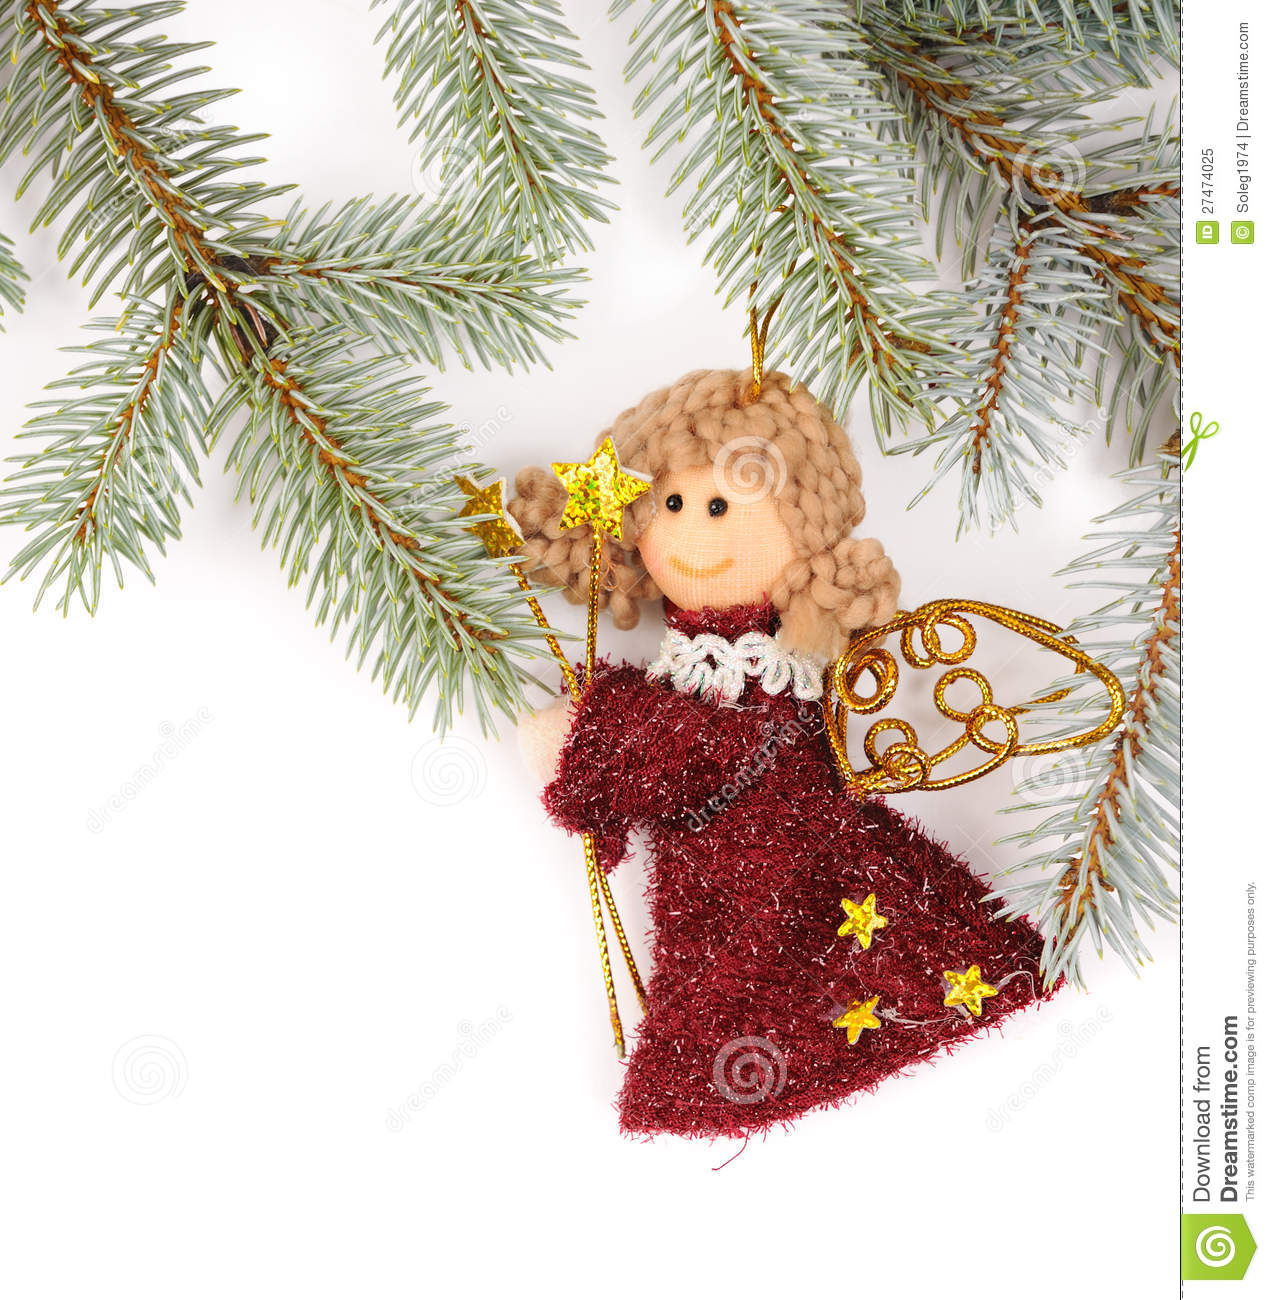 Christmas tree decoration with angel royalty free stock for Angel christmas tree decoration